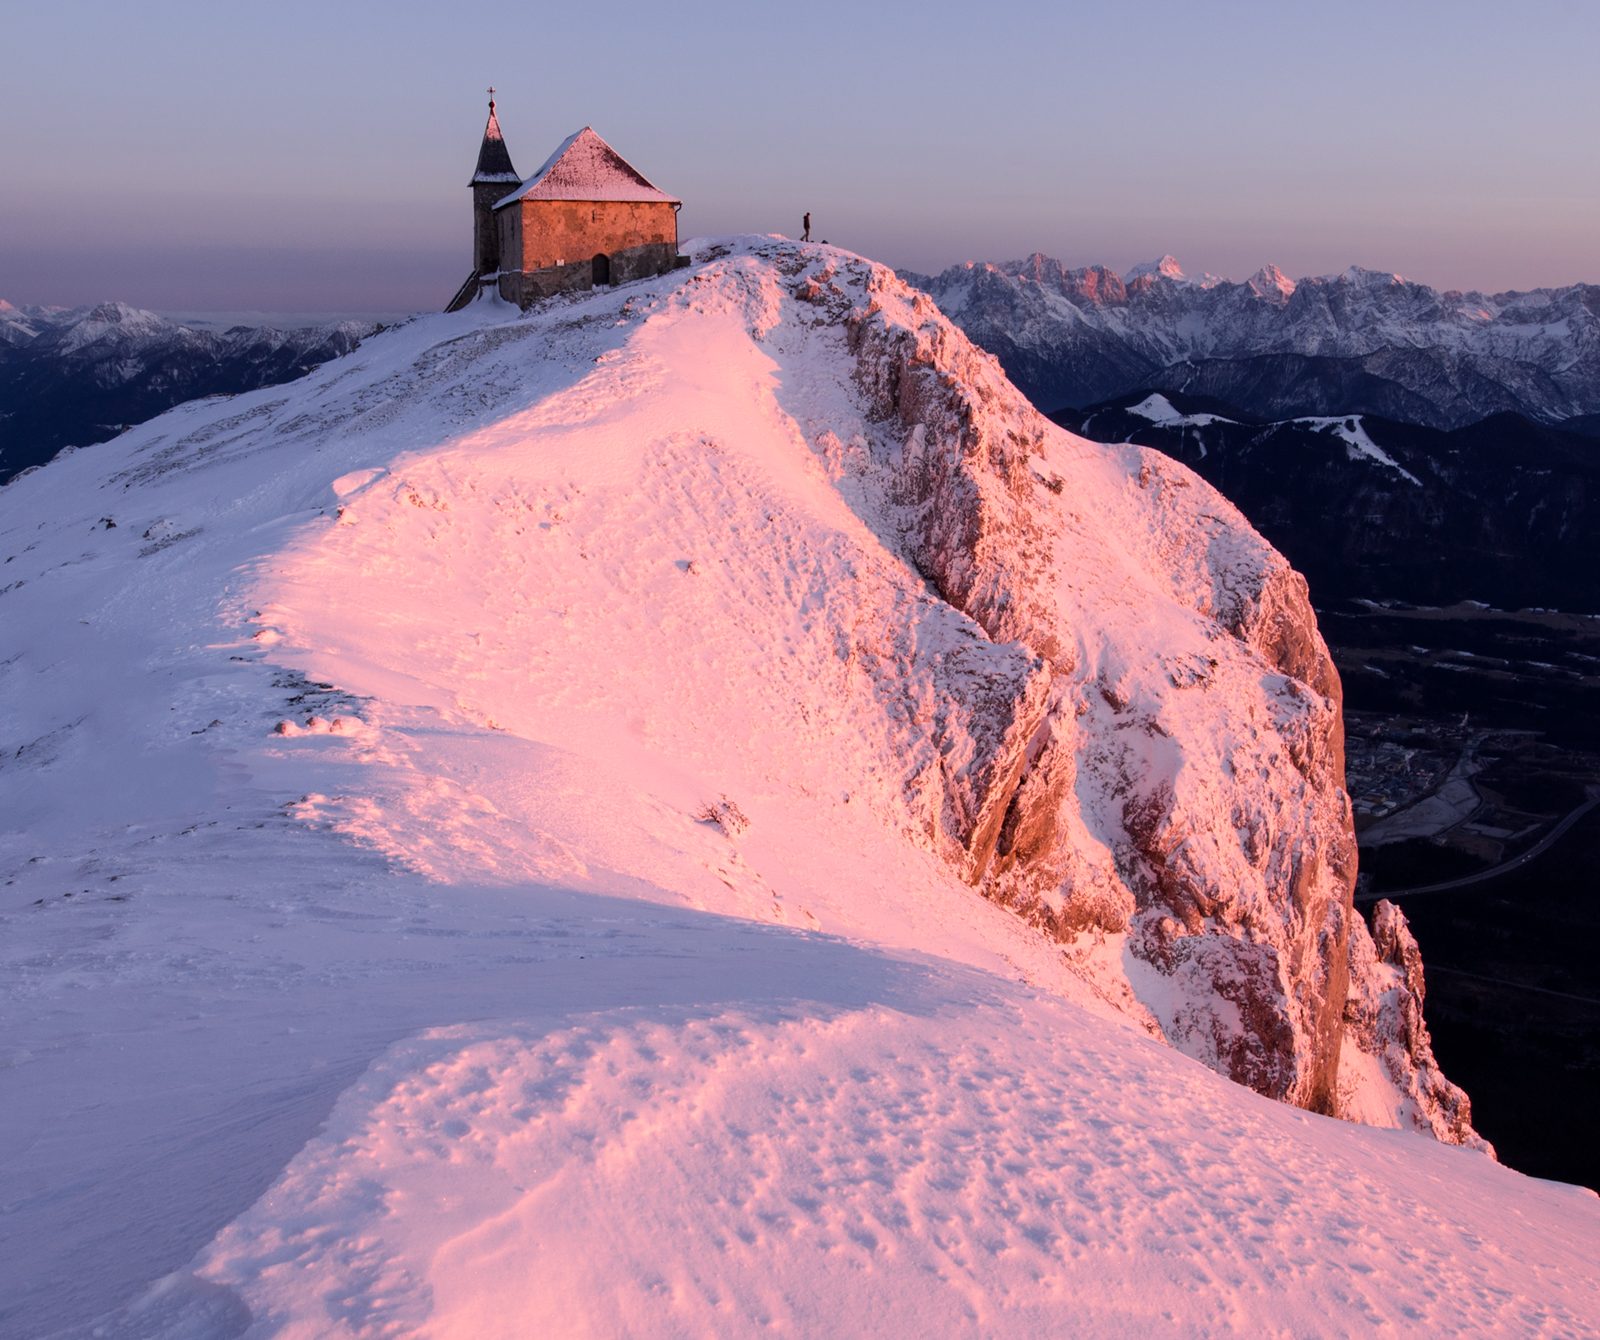 Church on the Mountain Top, Sony A7R, Canon 16-35mm f/4 at 16mm, ISO 100, 1/6 at f/16. Tripod. January. © Andrew Yu